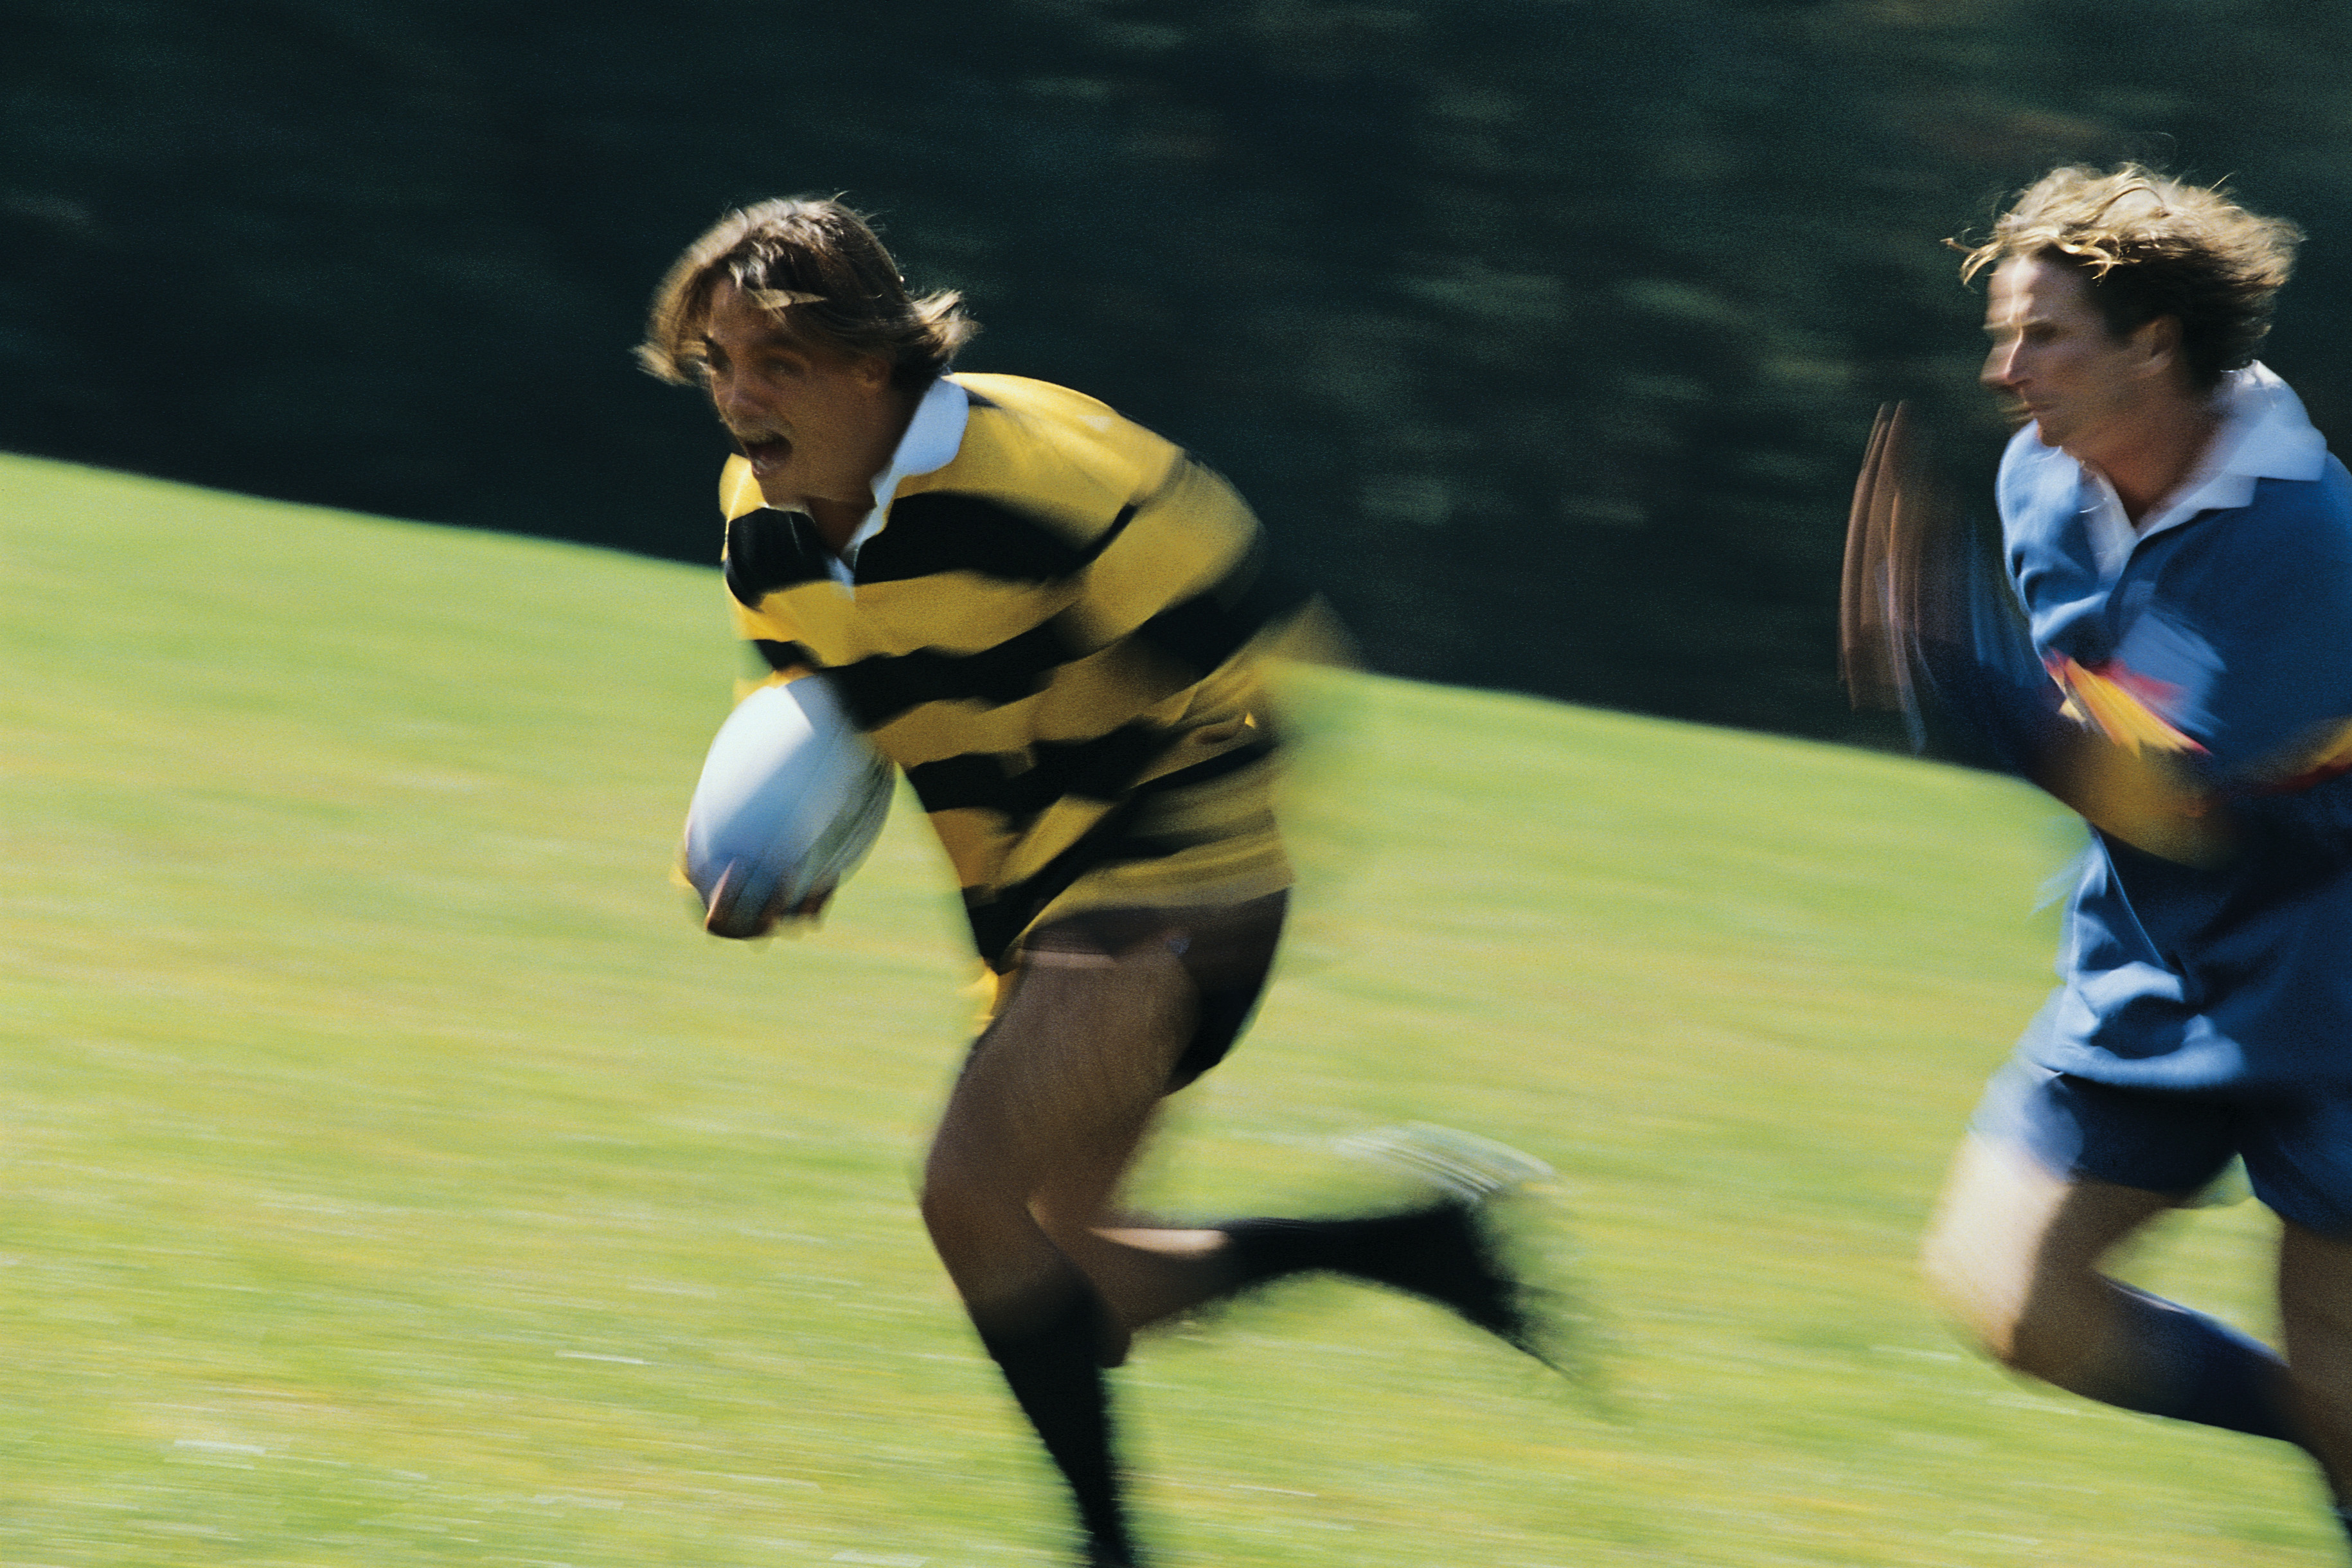 How Long Does a Rugby Match Last?